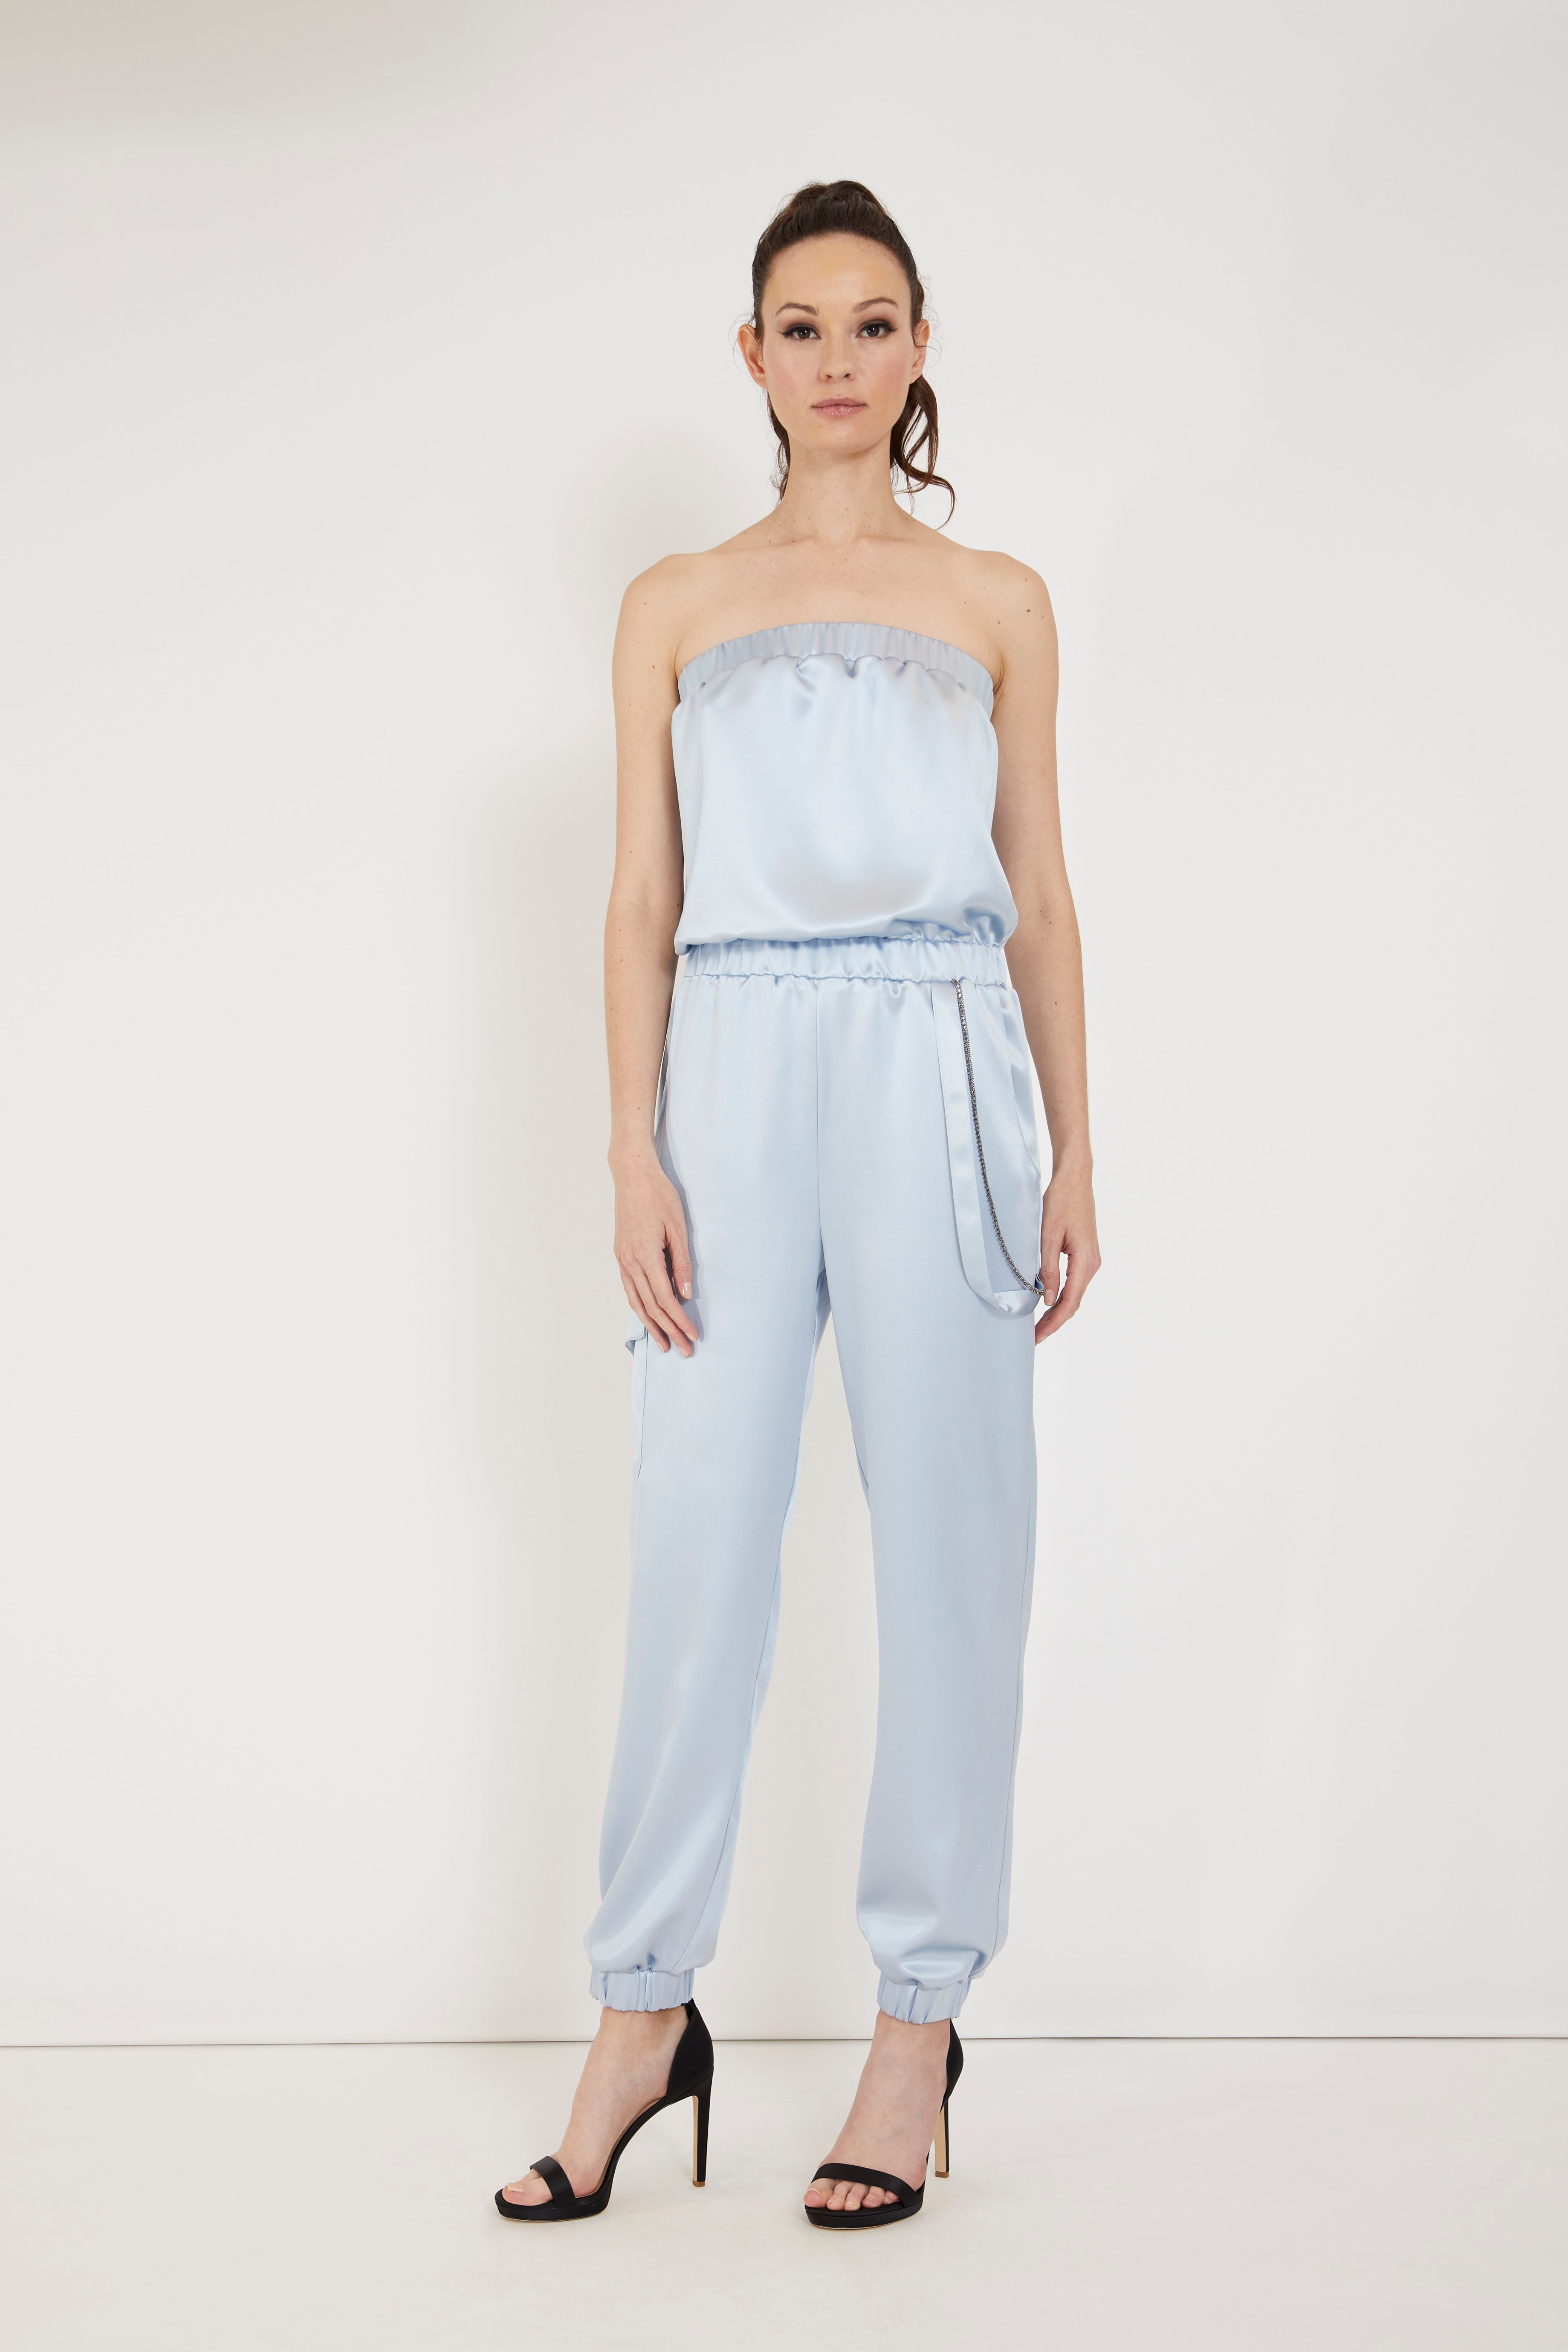 At-Leisure Silk Jumpsuit - Baby Blue